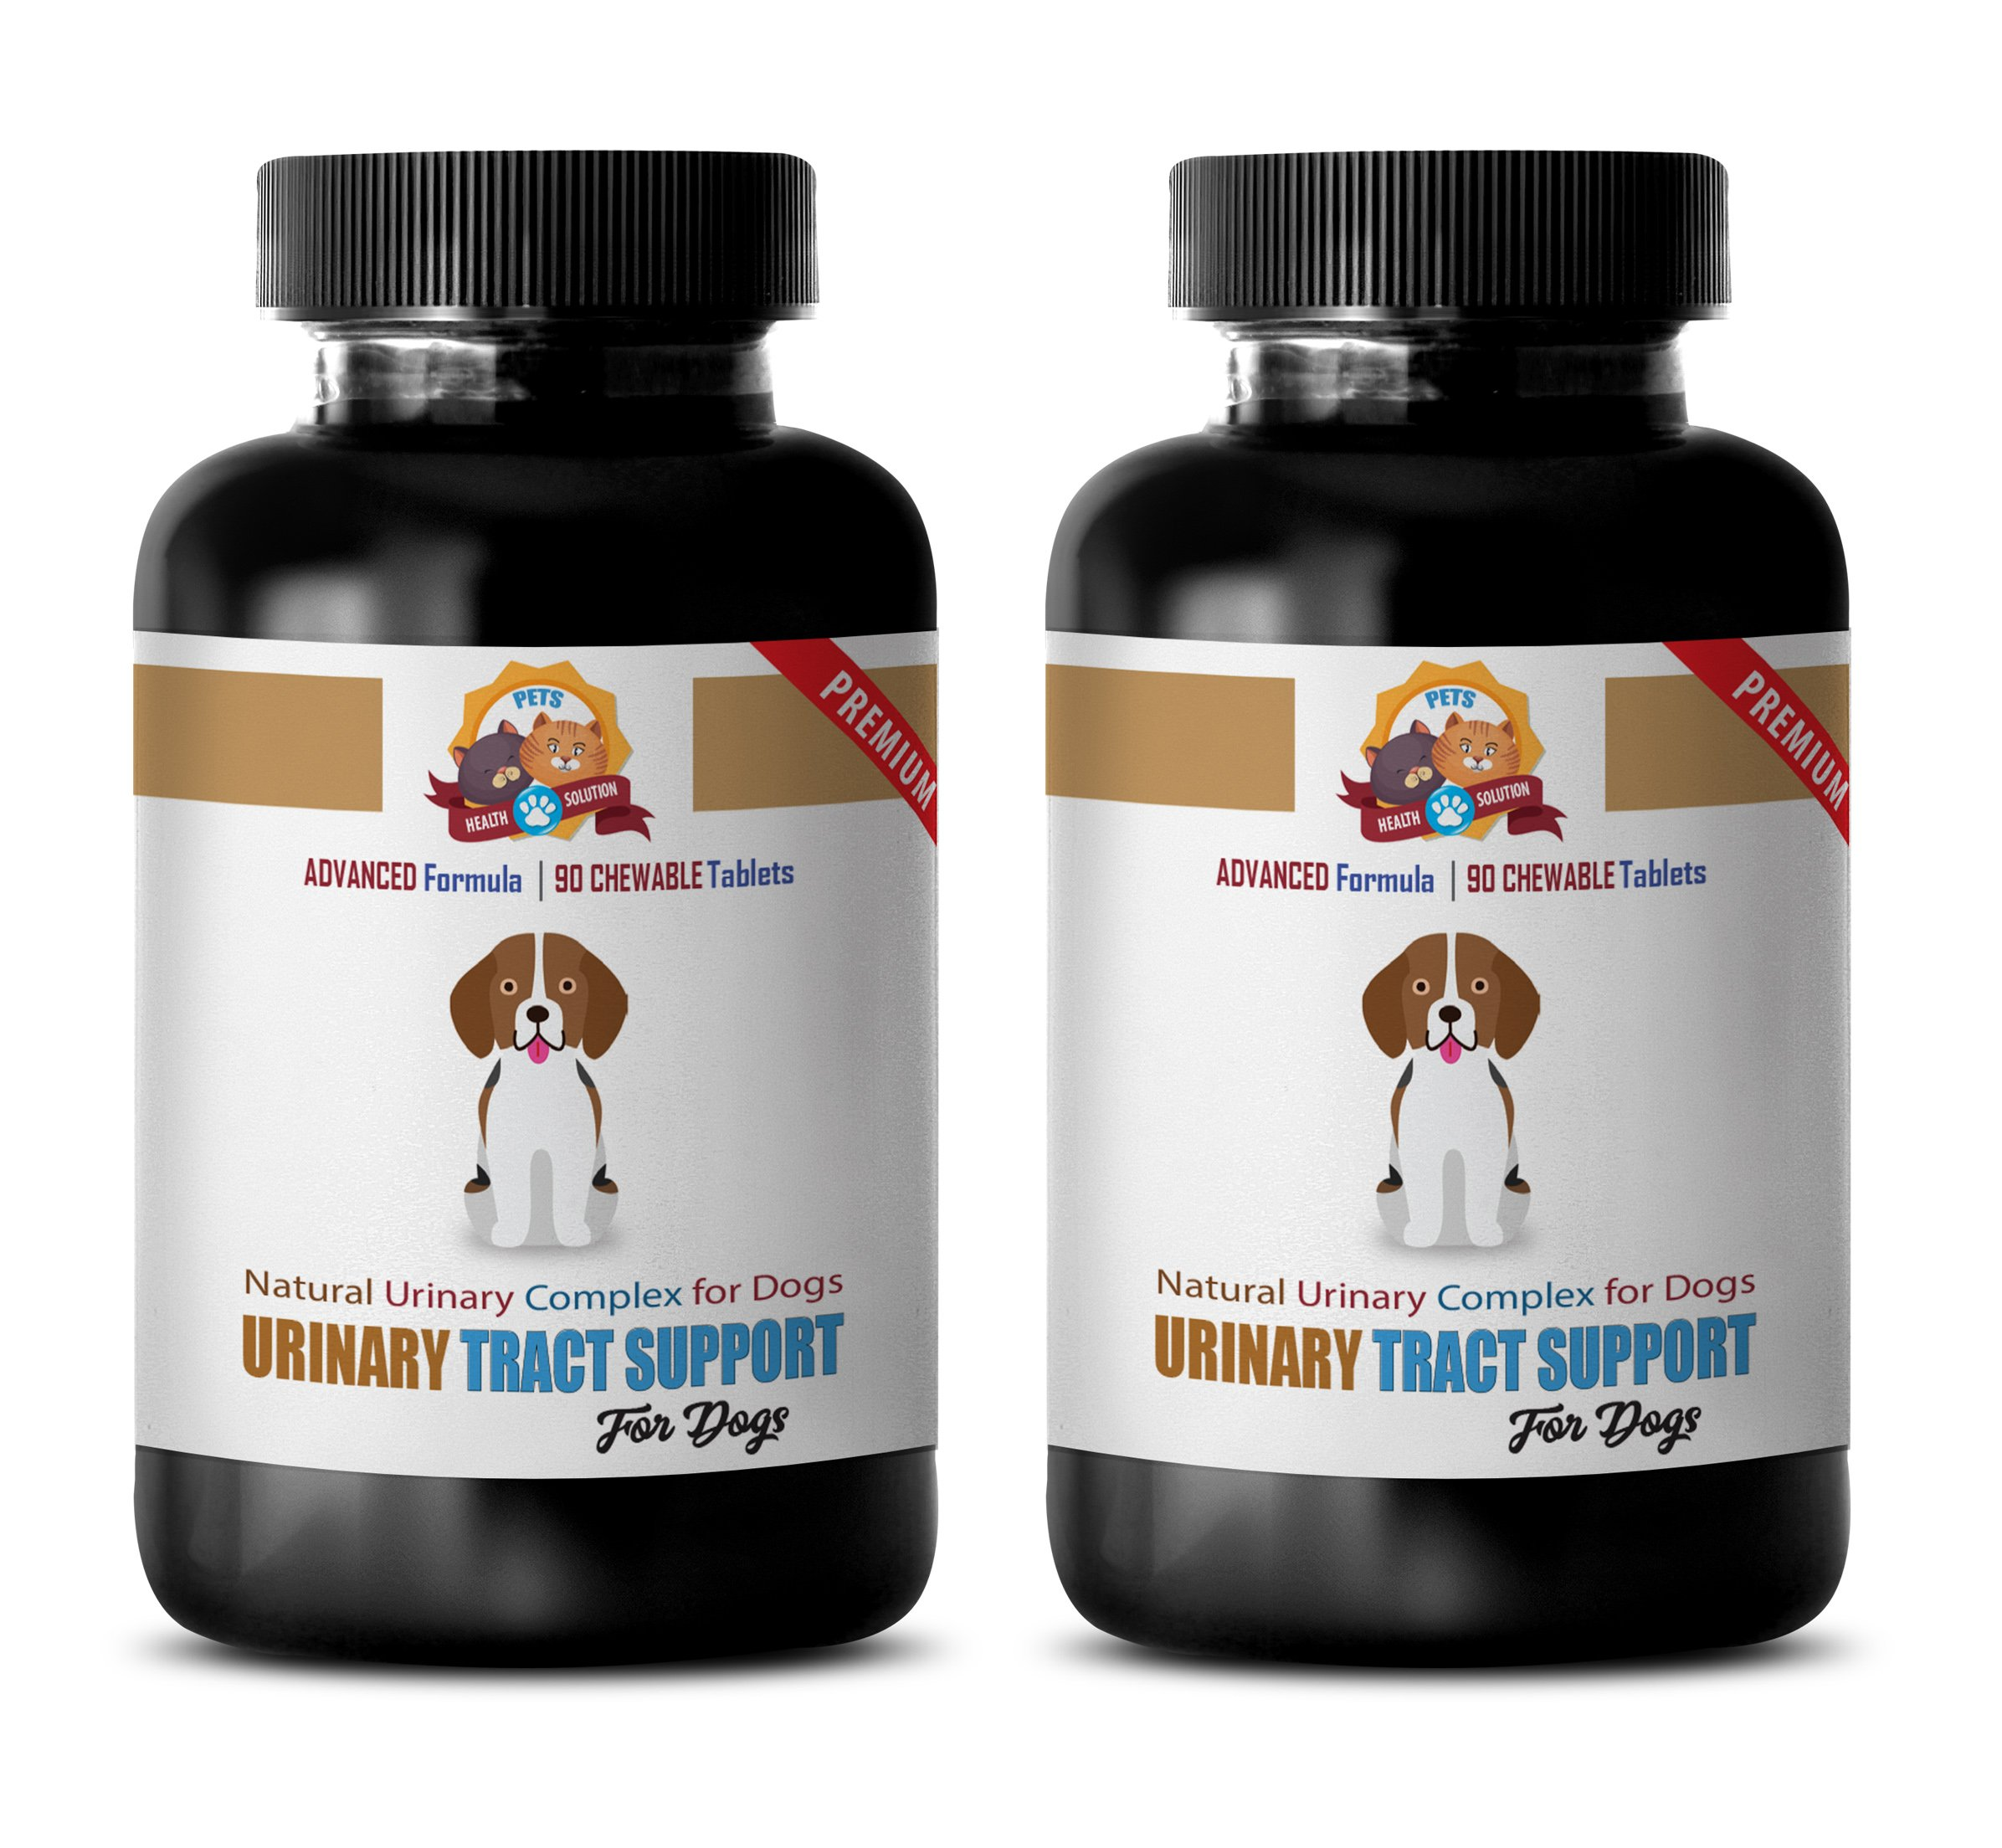 PETS HEALTH SOLUTION dog bladder support - NATURAL URINARY TRACT SUPPORT - DOG TREATS - PREMIUM ADVANCED COMPLEX - dog cranberry extract - 180 Treats (2 Bottle) by PETS HEALTH SOLUTION